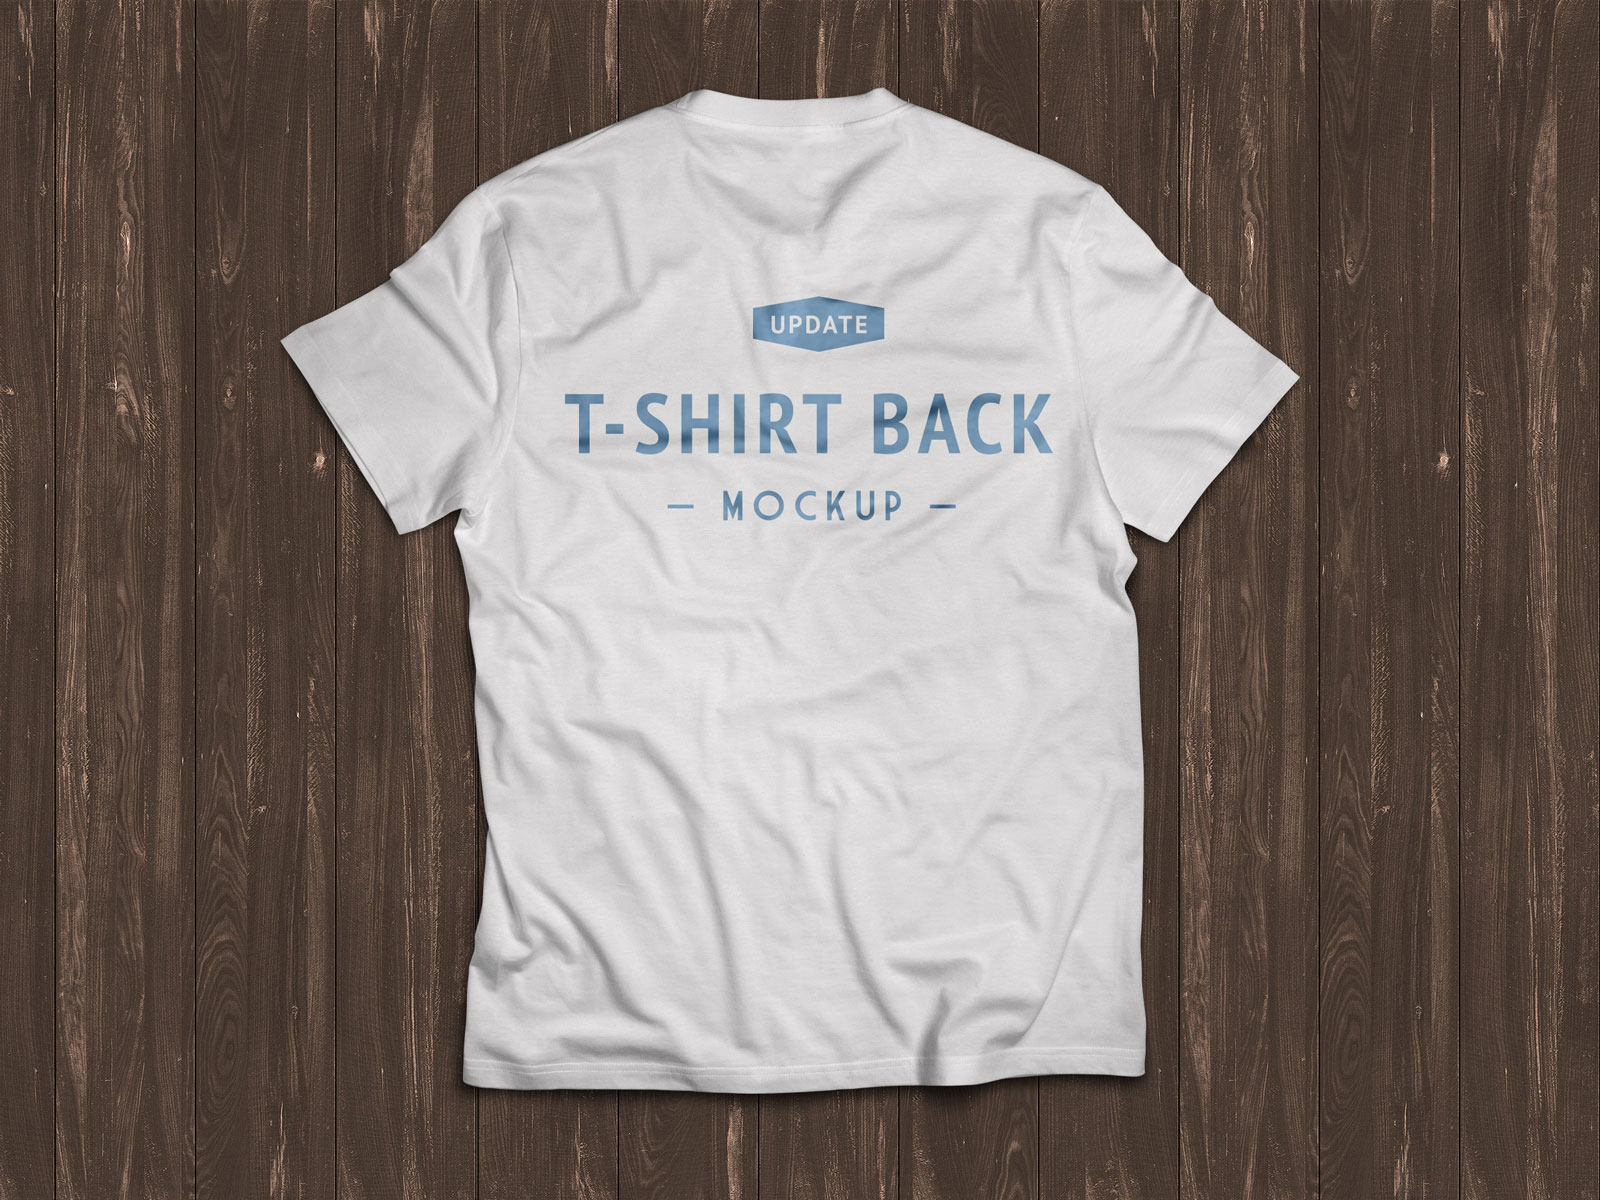 Free-White-Half-Sleeves-T-shirt-Mockup-PSD-Backside